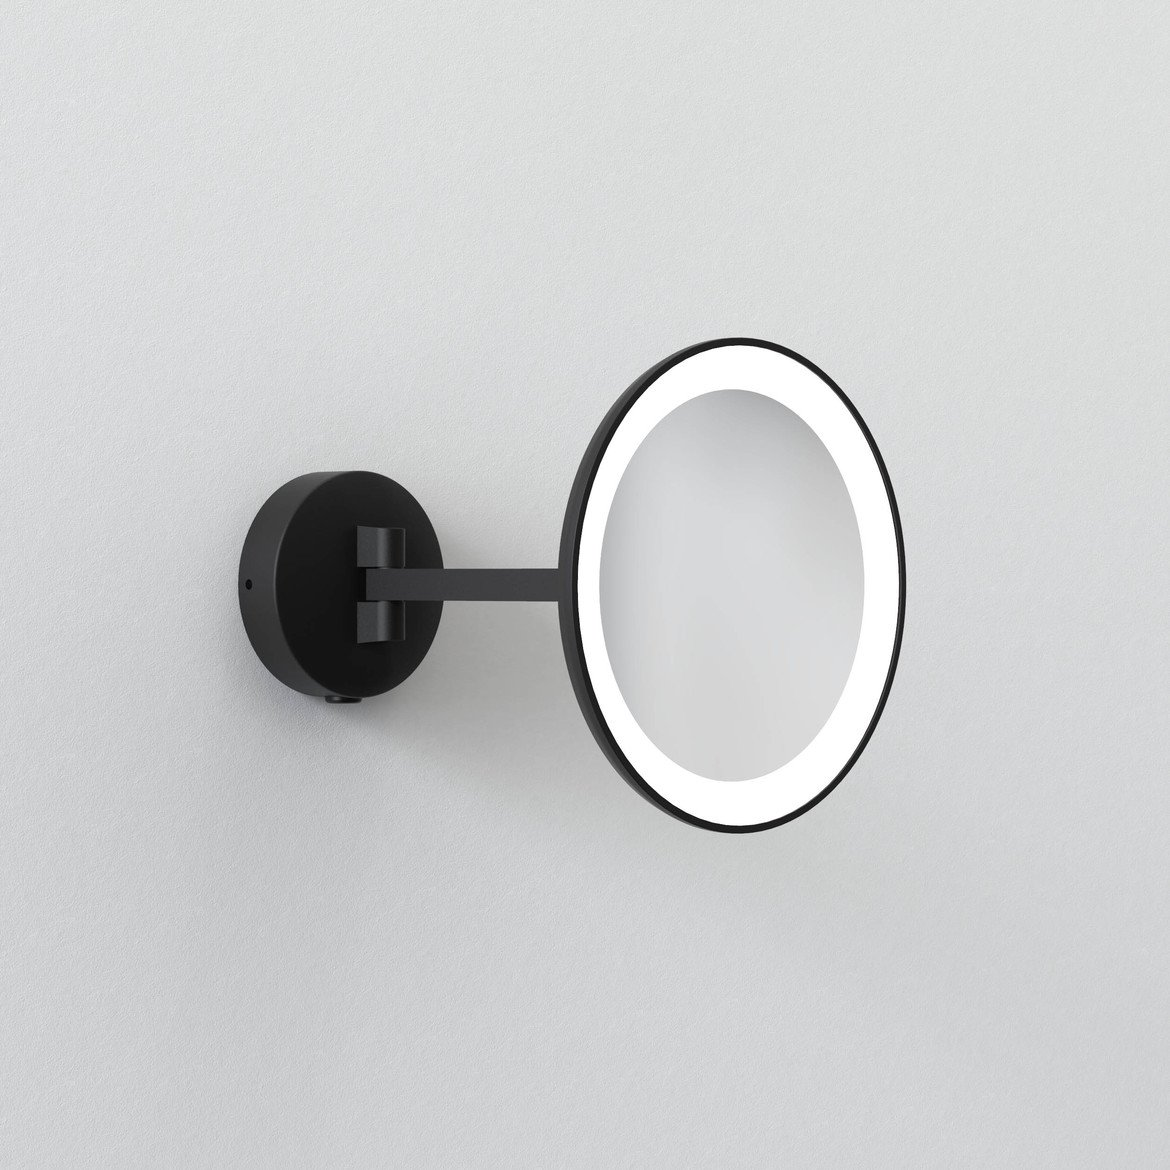 Astro Lighting 1373011 Mascali Round Black LED Vanity Mirror